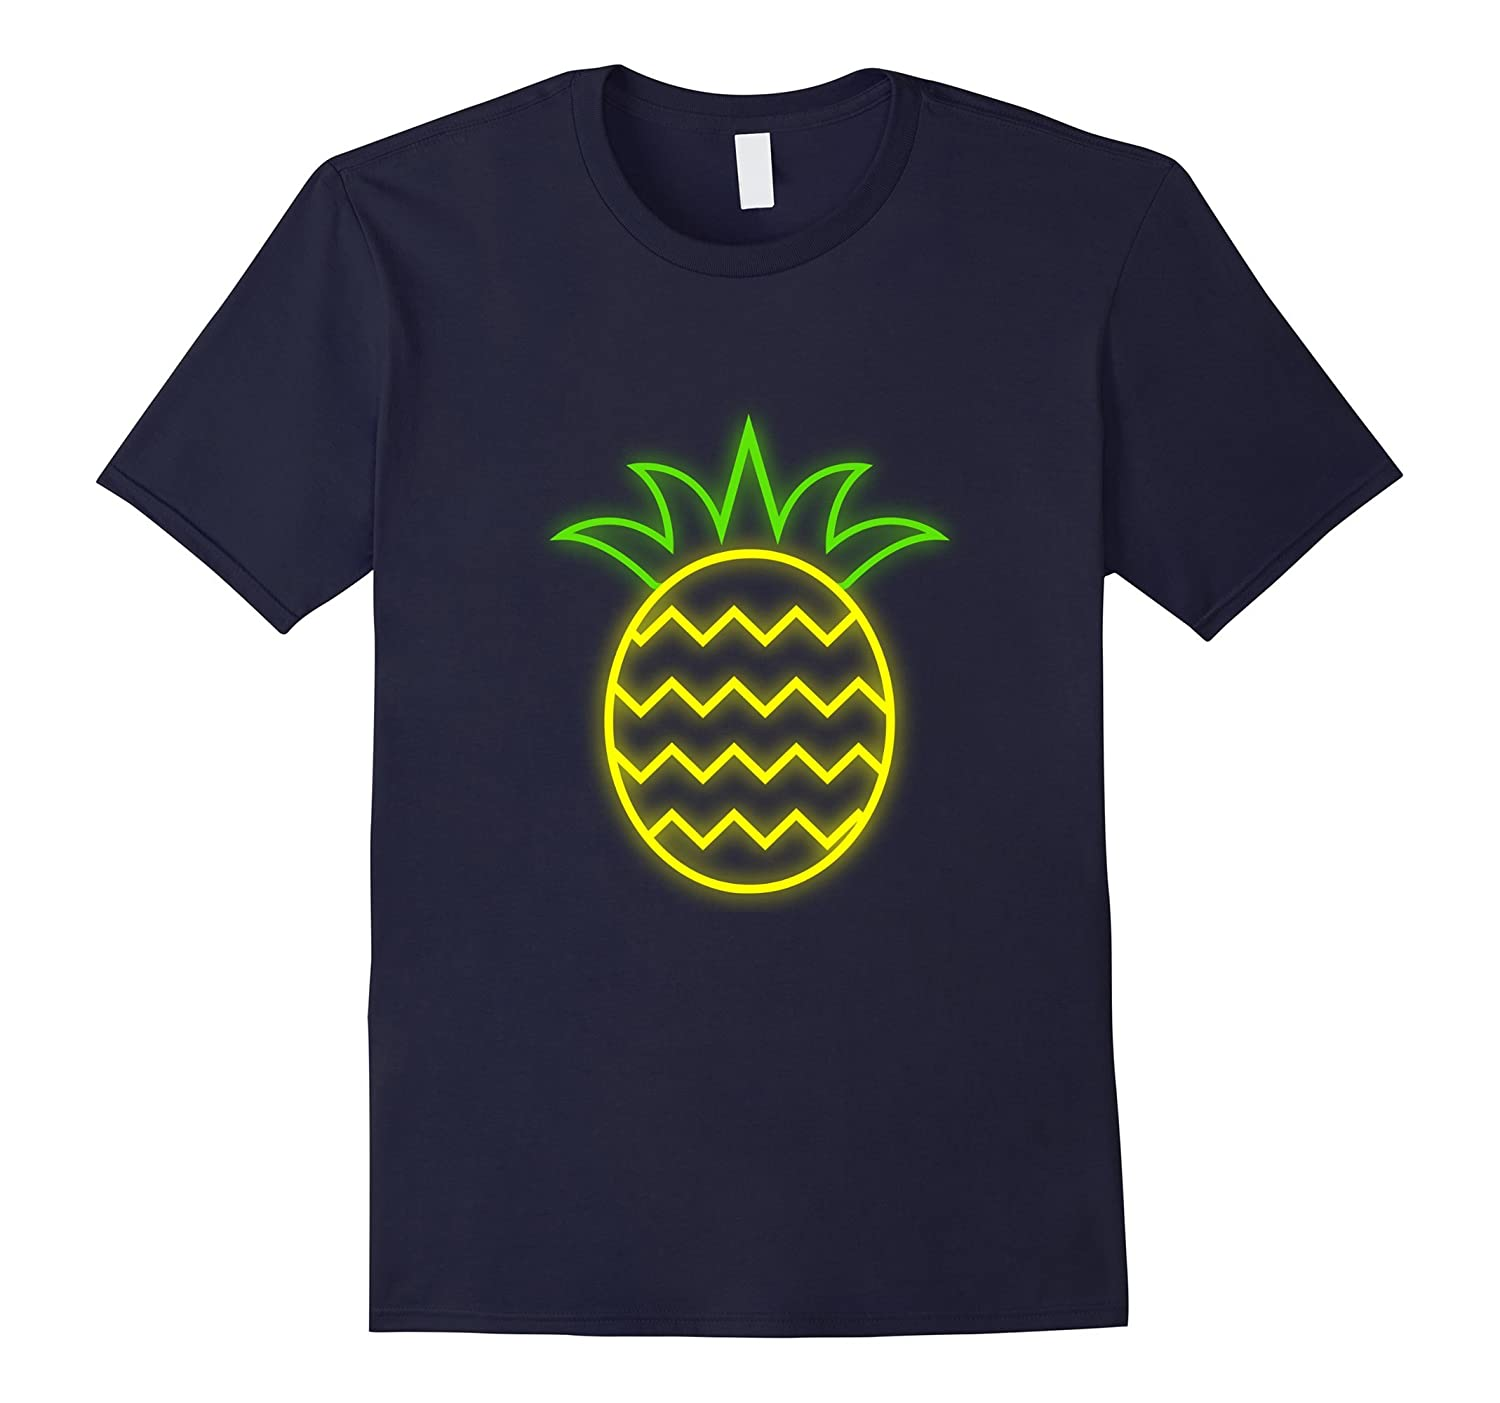 80s Neon Pineapple Aloha T-Shirt 80s Clothes for Women Men-T-Shirt